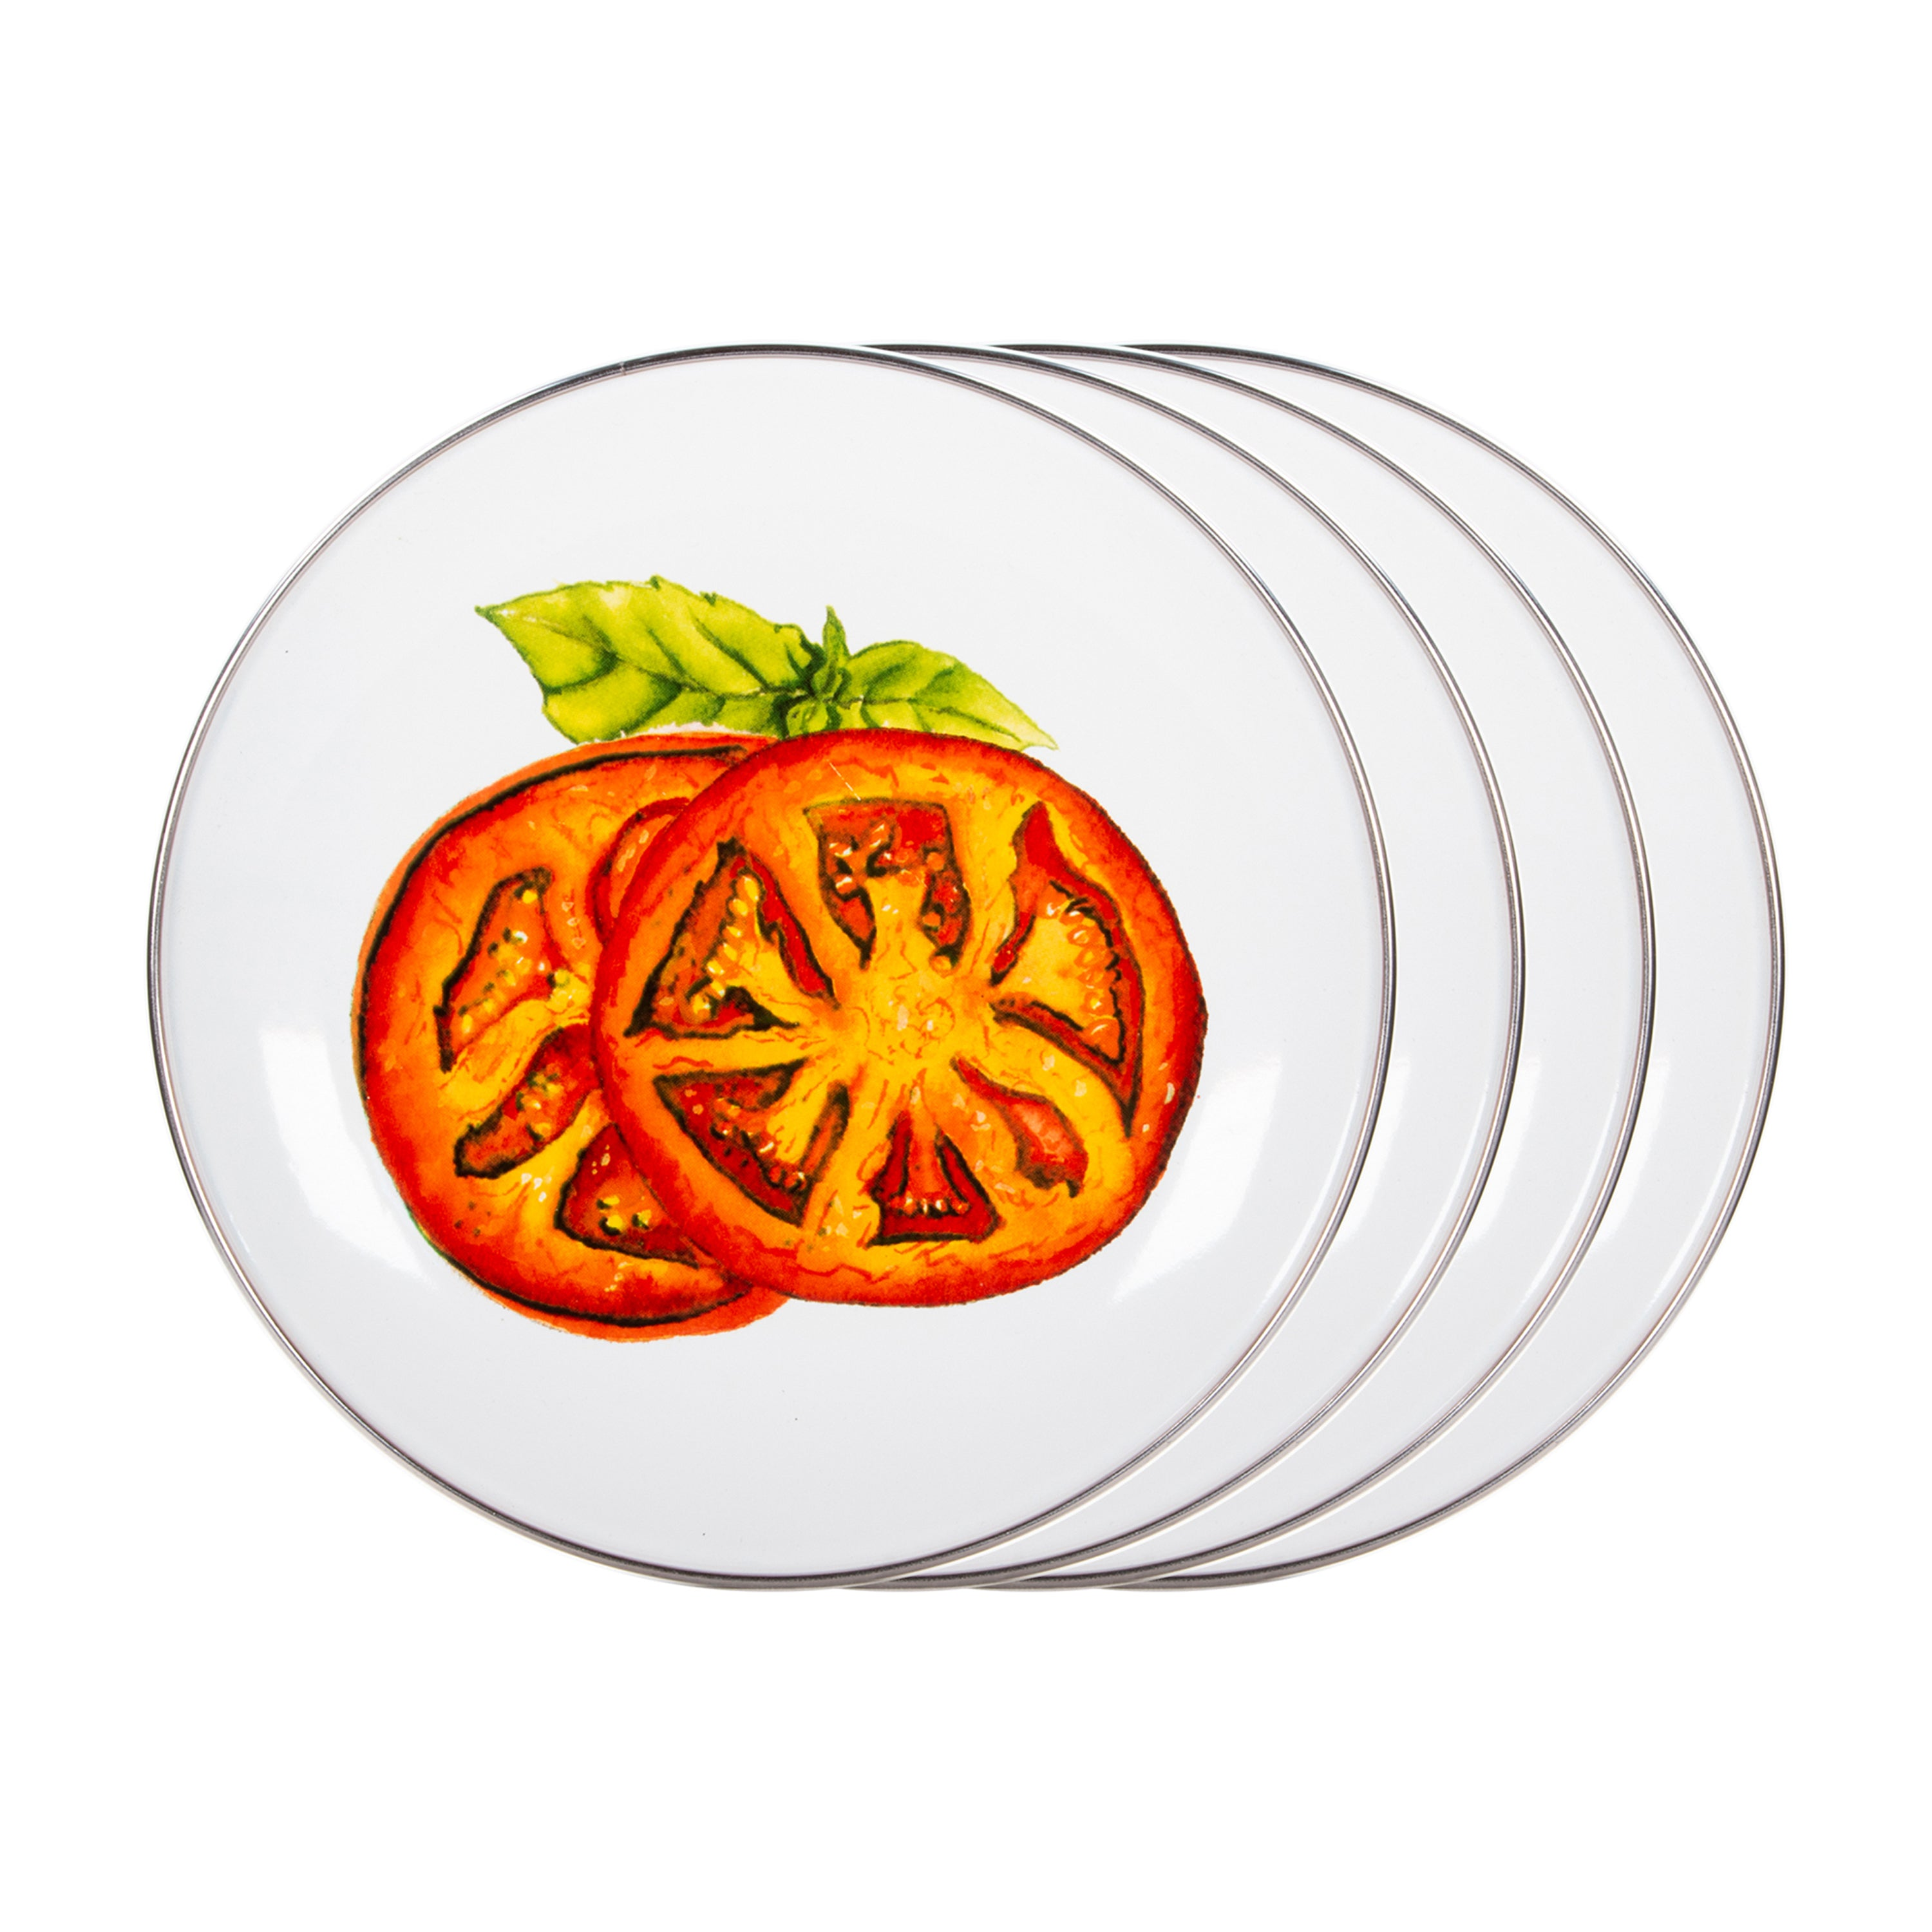 TM69S4 - Set of 4 Tomatoes Sandwich Plates Image 1